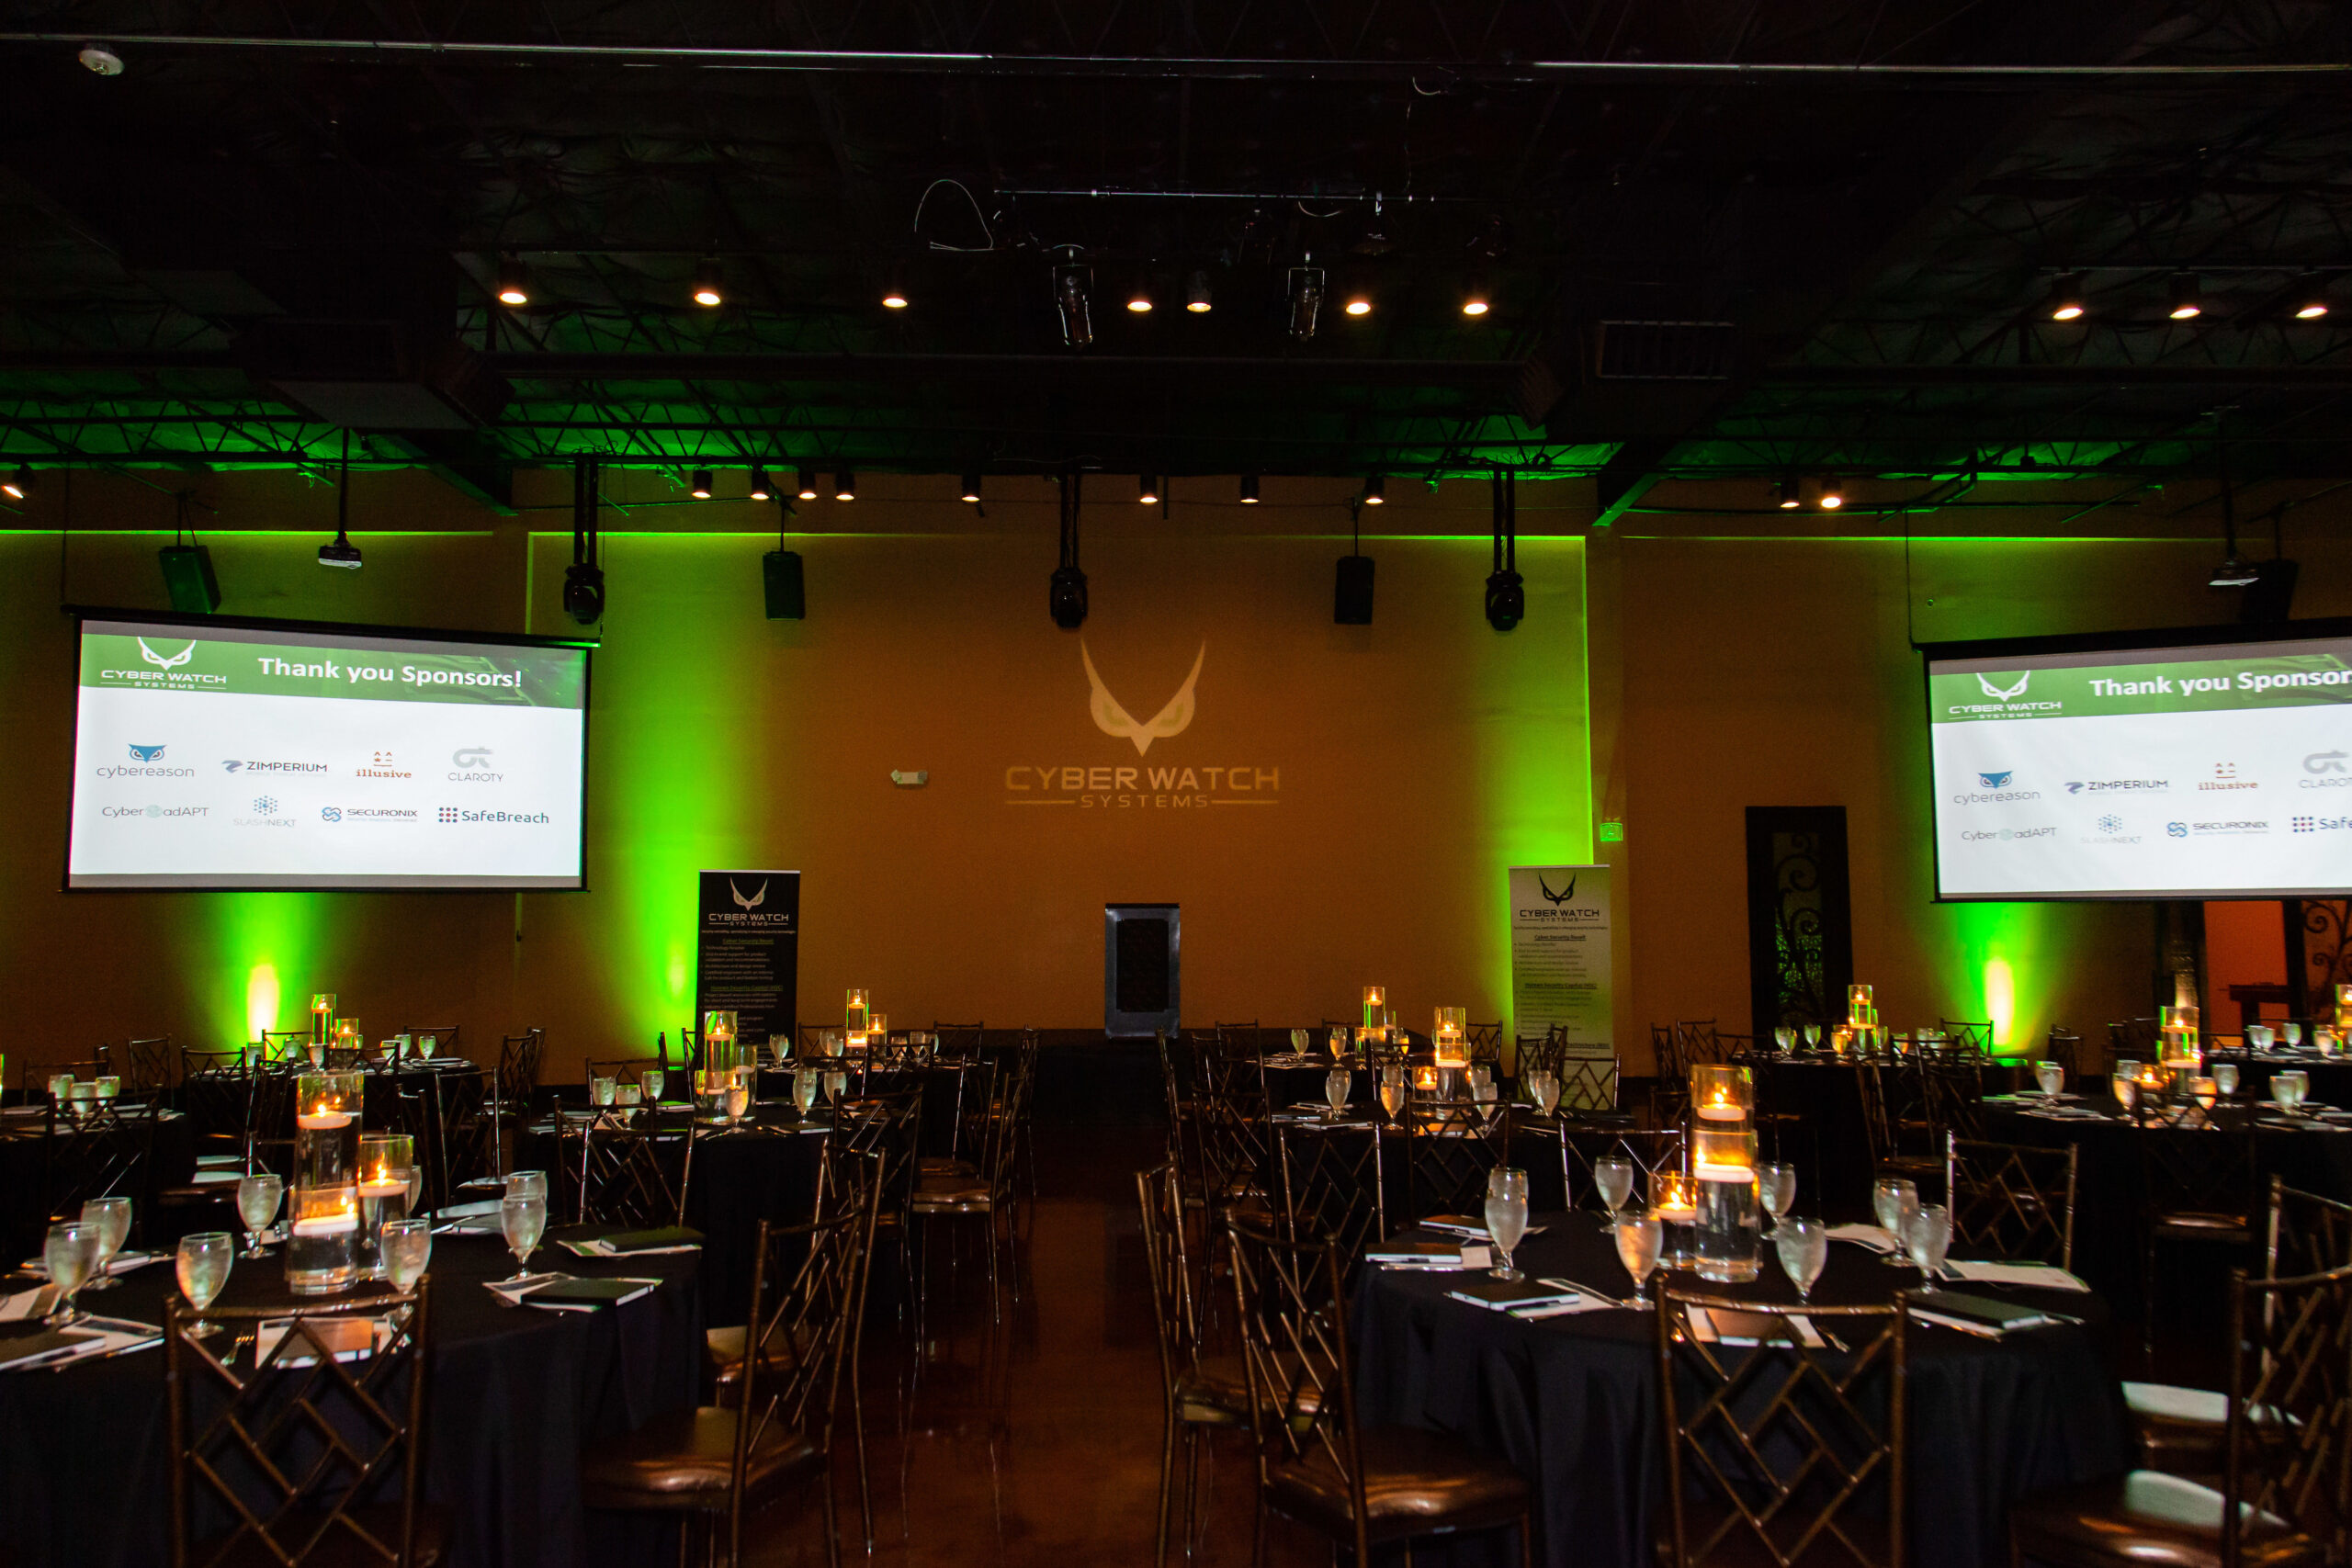 Vouv Corporate Events